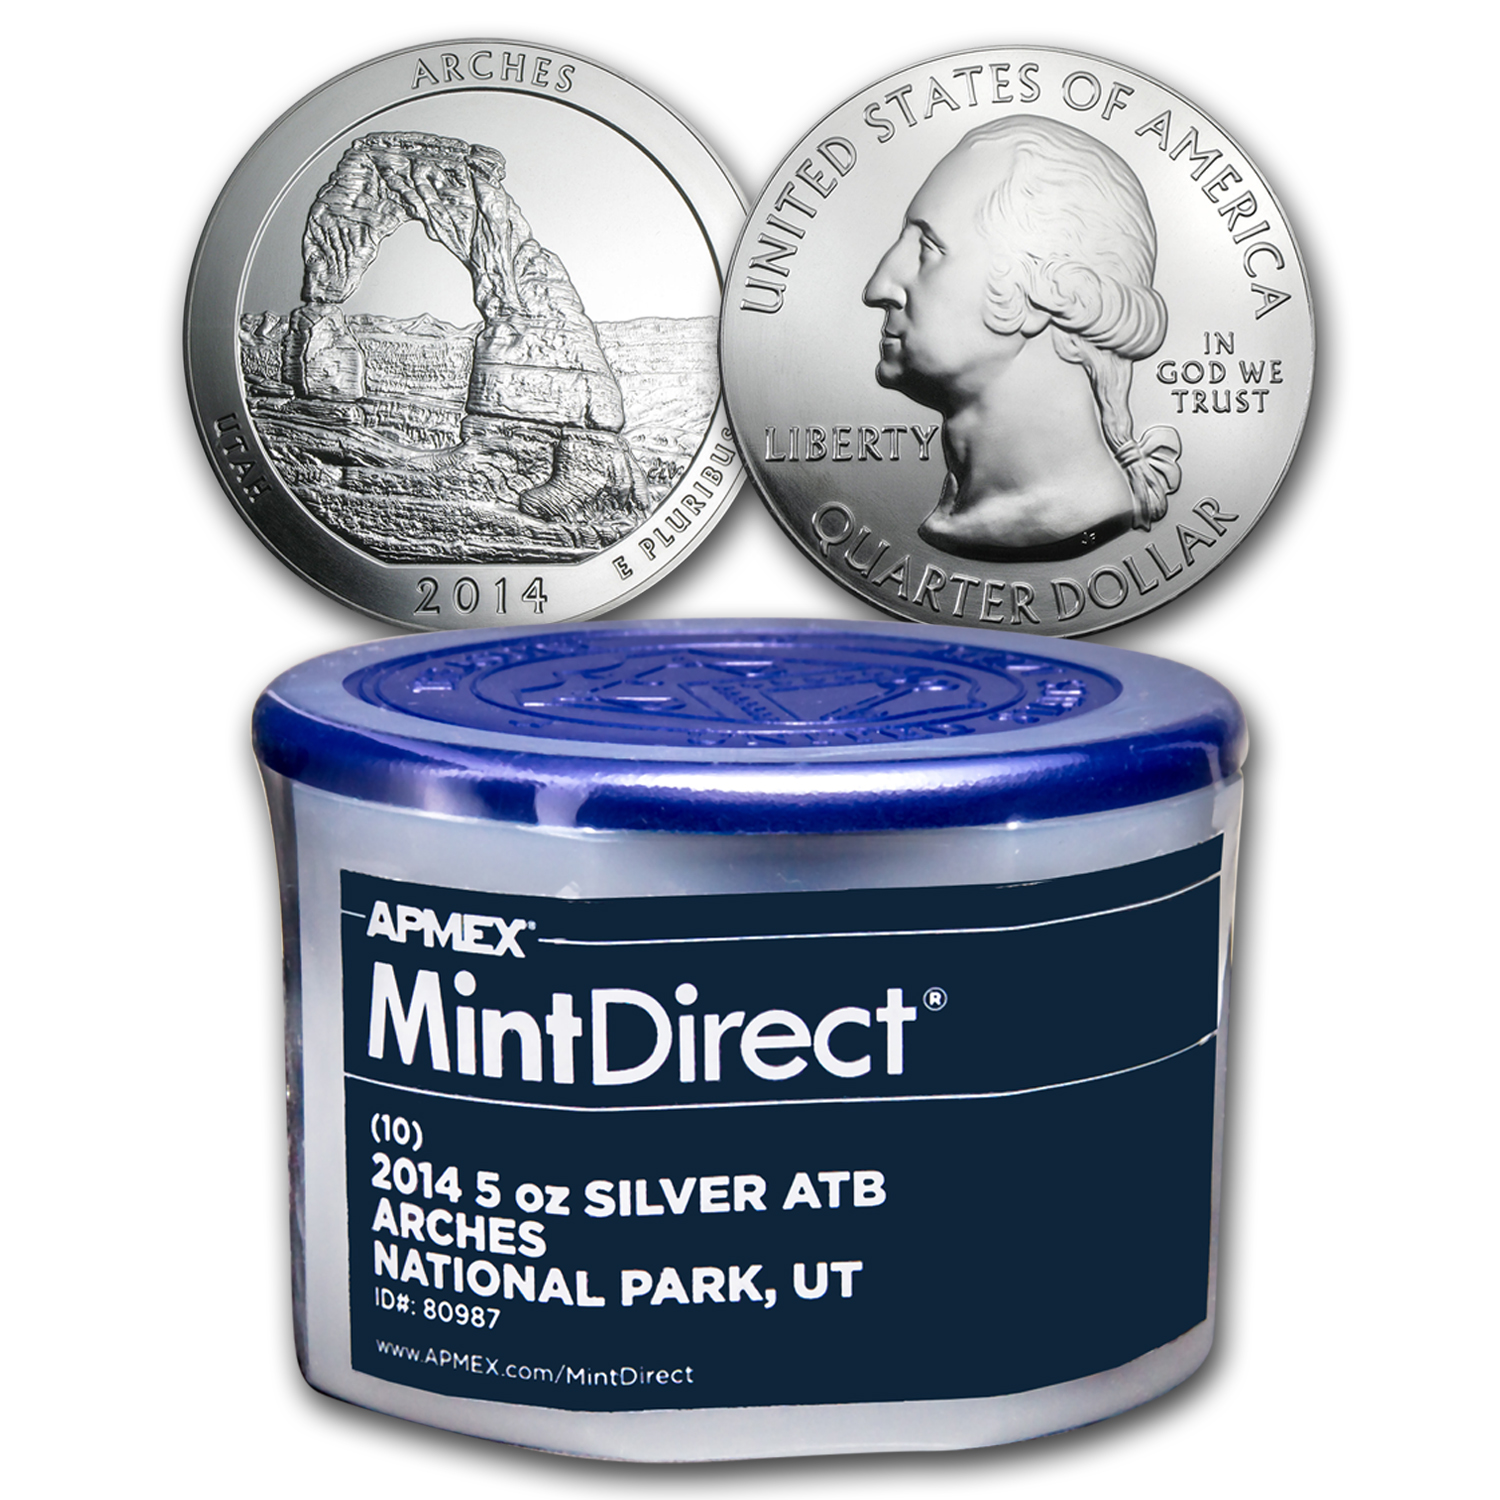 2014 5 oz Silver ATB Arches (10-Coin MintDirect® Tube)